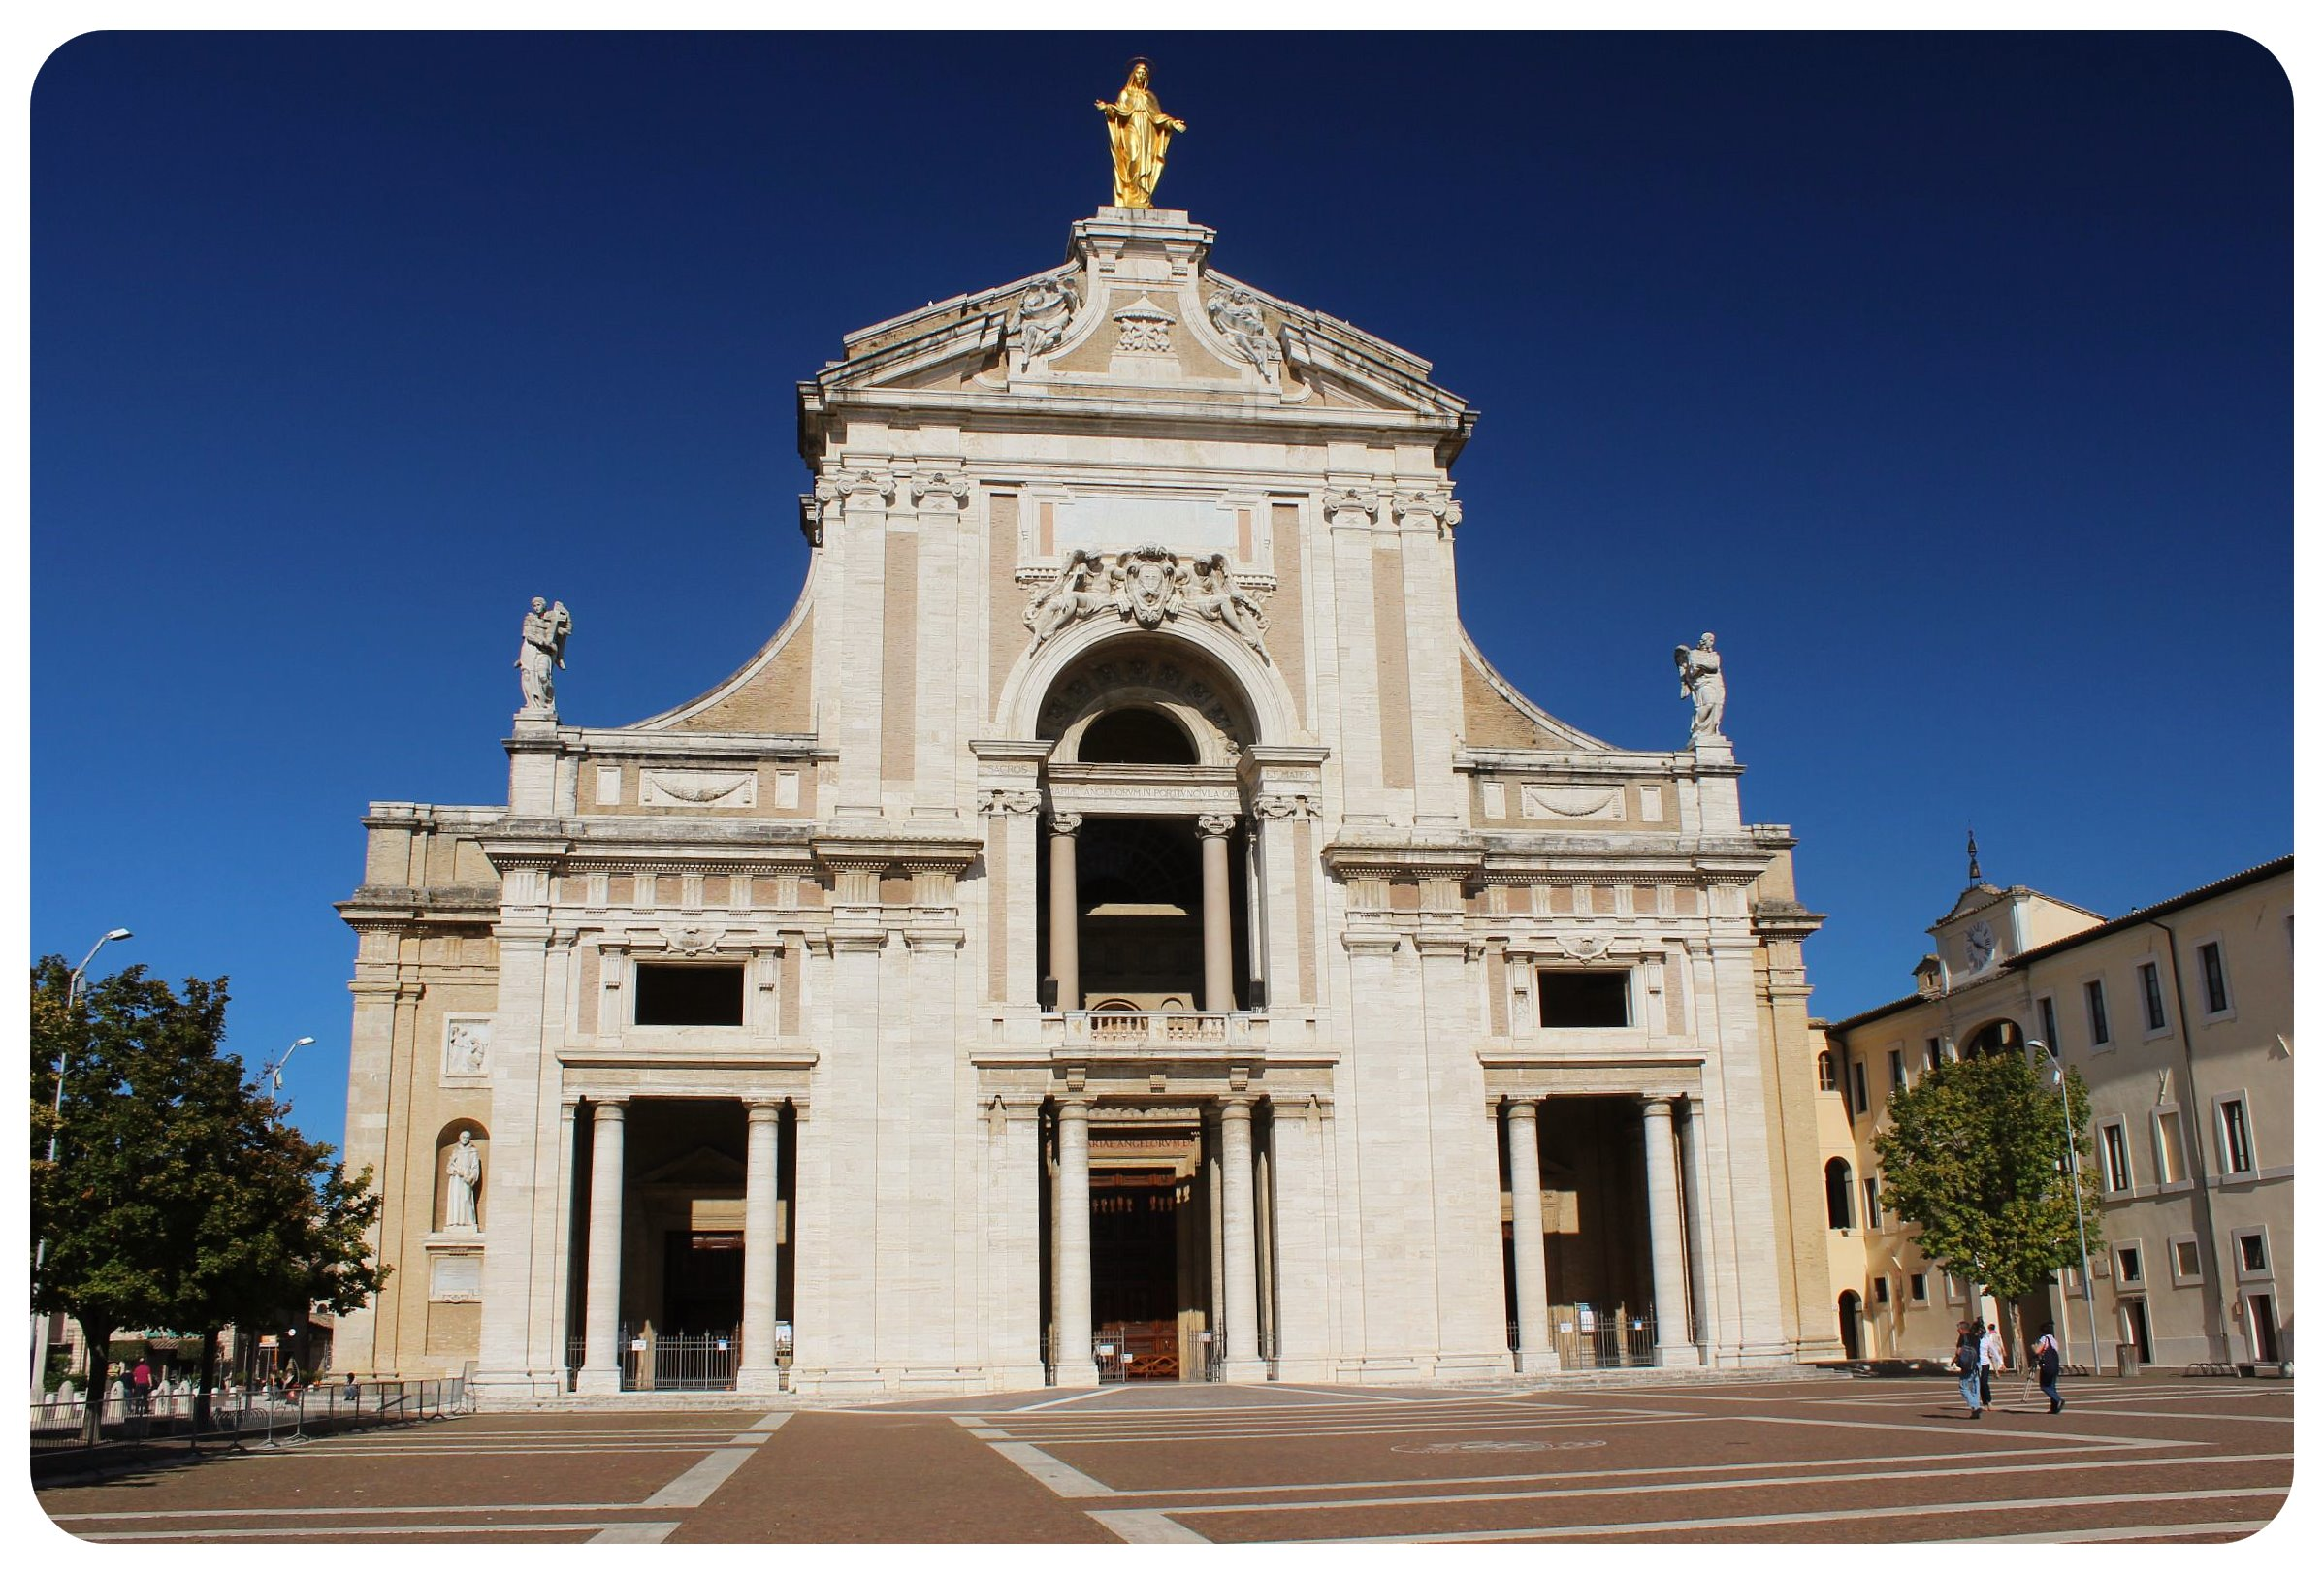 assisi christian dating site Yes, st francis of assisi does your church have a singles ministry or single christian activities do you want to promote your church's activities on this meetup .